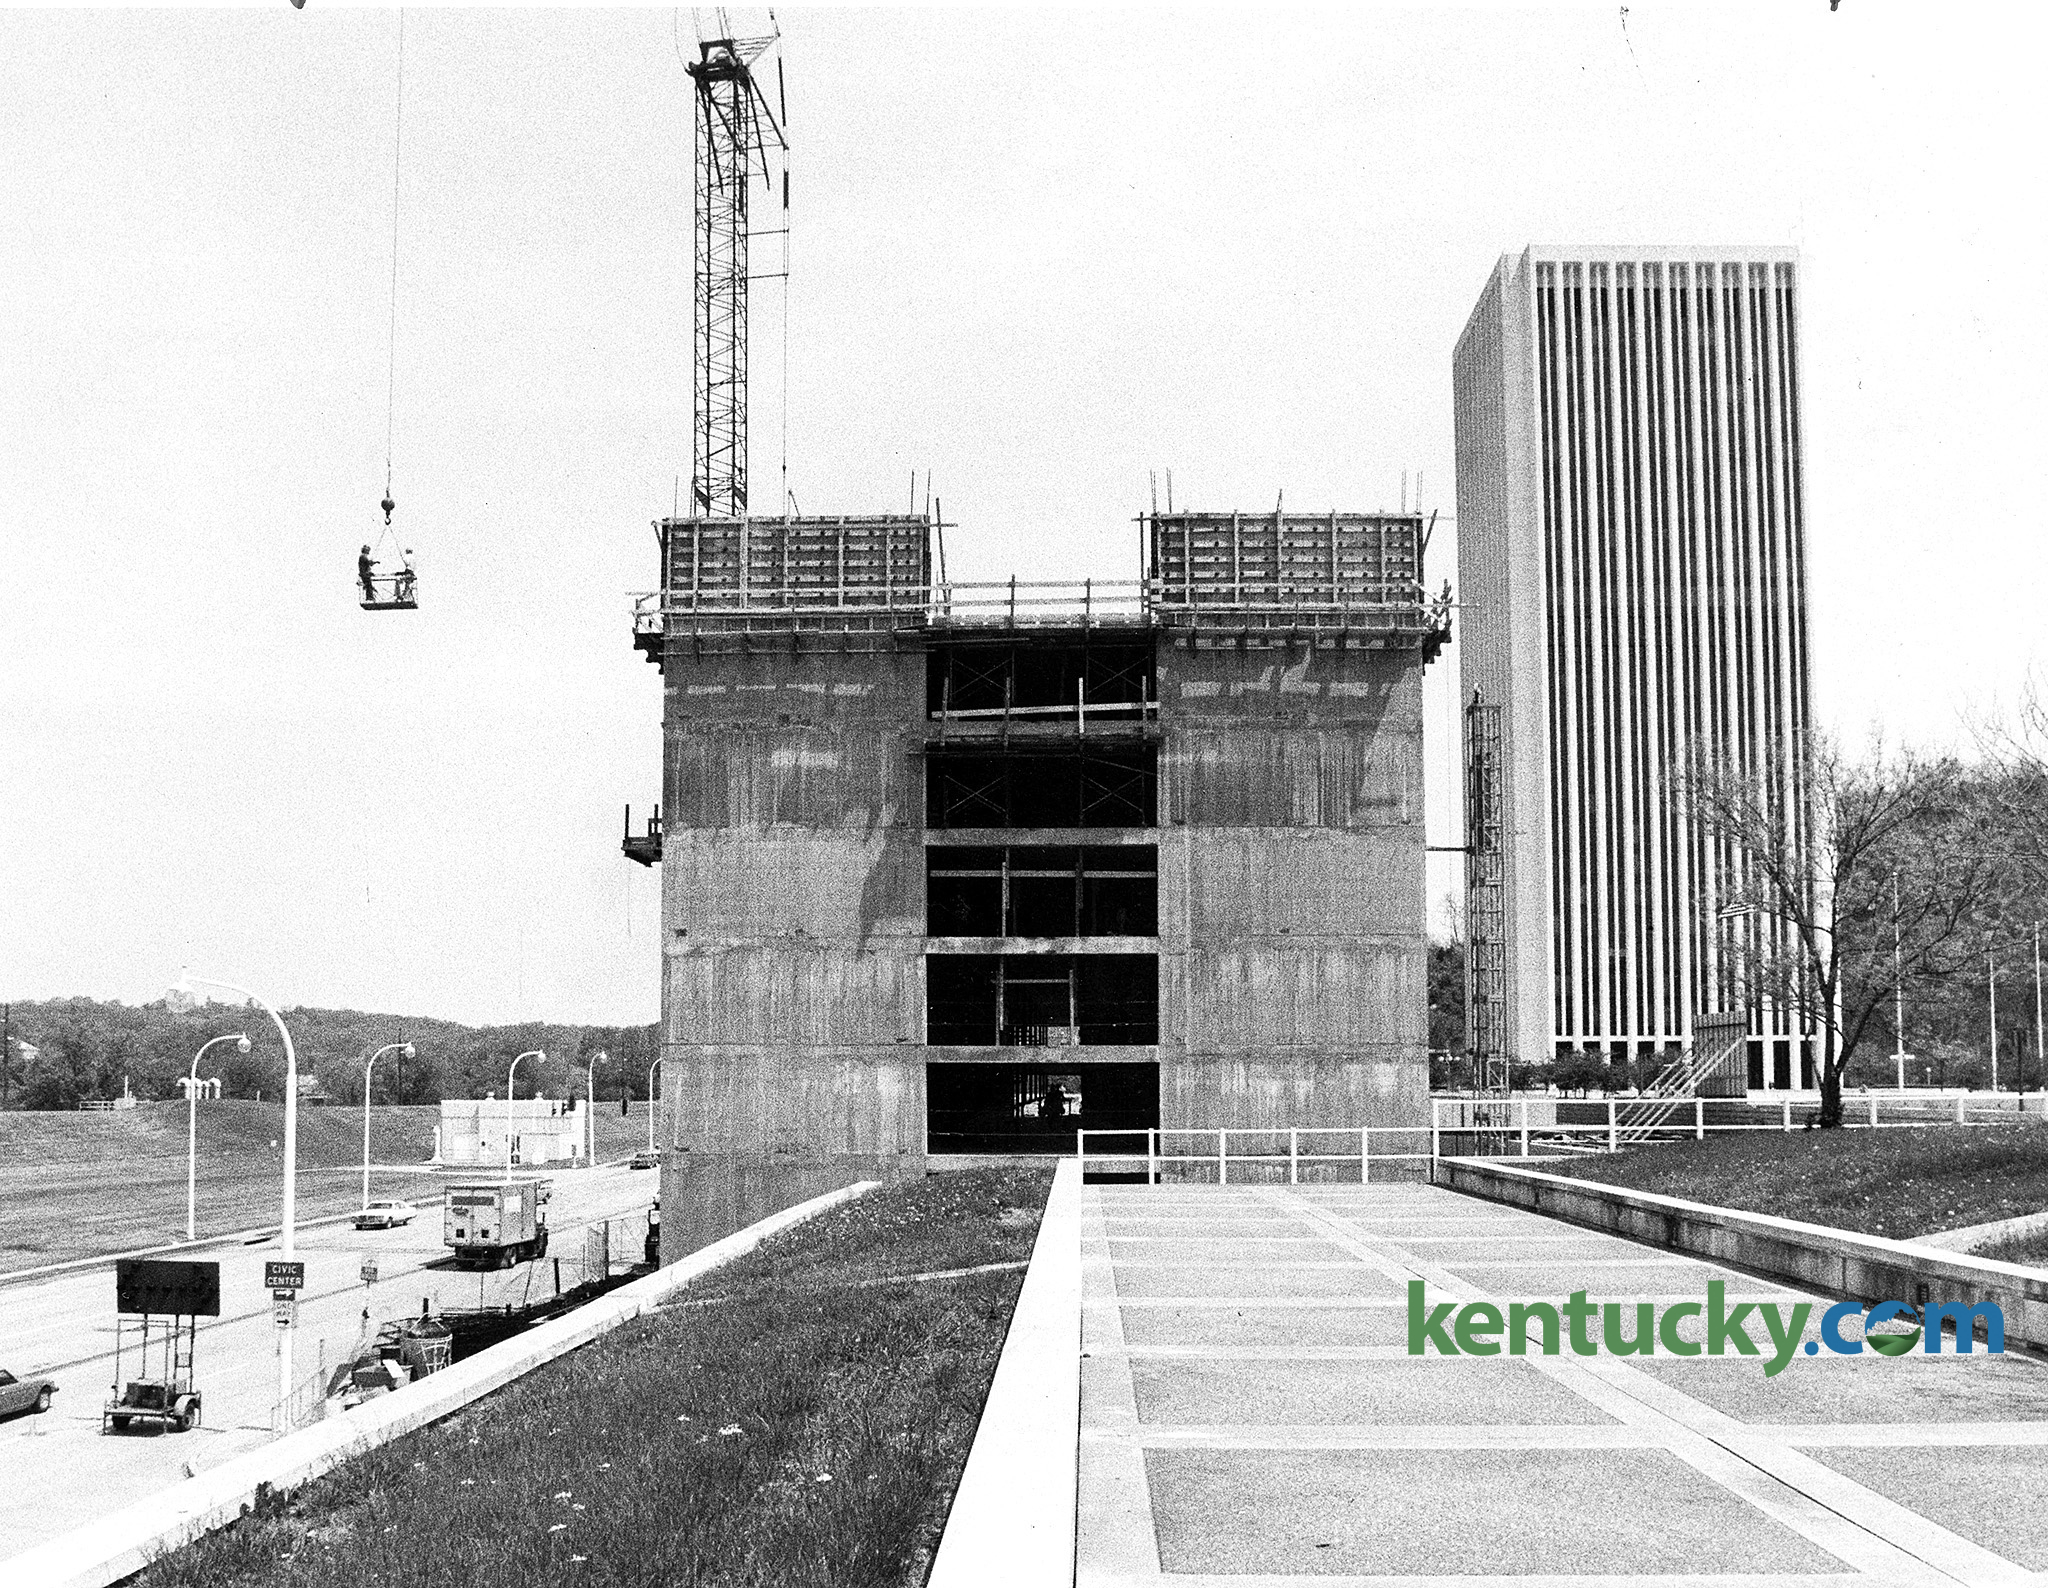 Construction Continued On The Capital Plaza Hotel In Frankfort May 11 1983